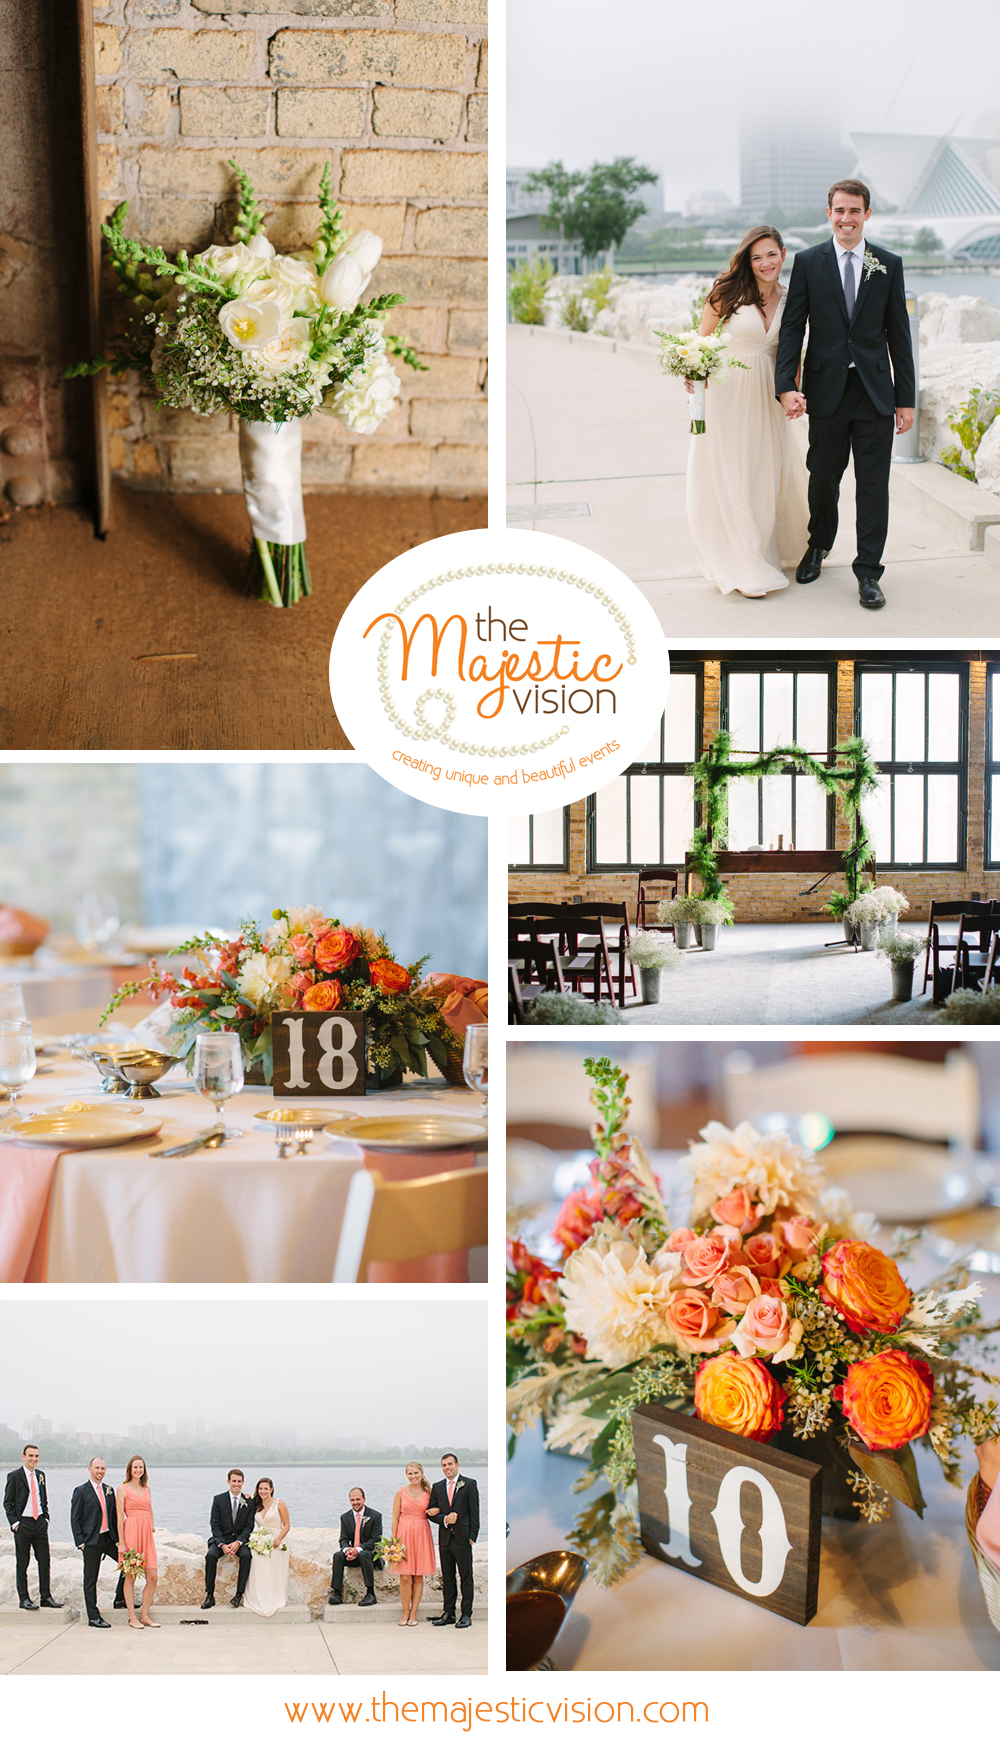 Elegant Blush, Coral and Cream Wedding | The Majestic Vision Wedding Planning | Pritzlaff Building in Milwaukee, WI | www.themajesticvision.com | Lisa Mathewson Photography